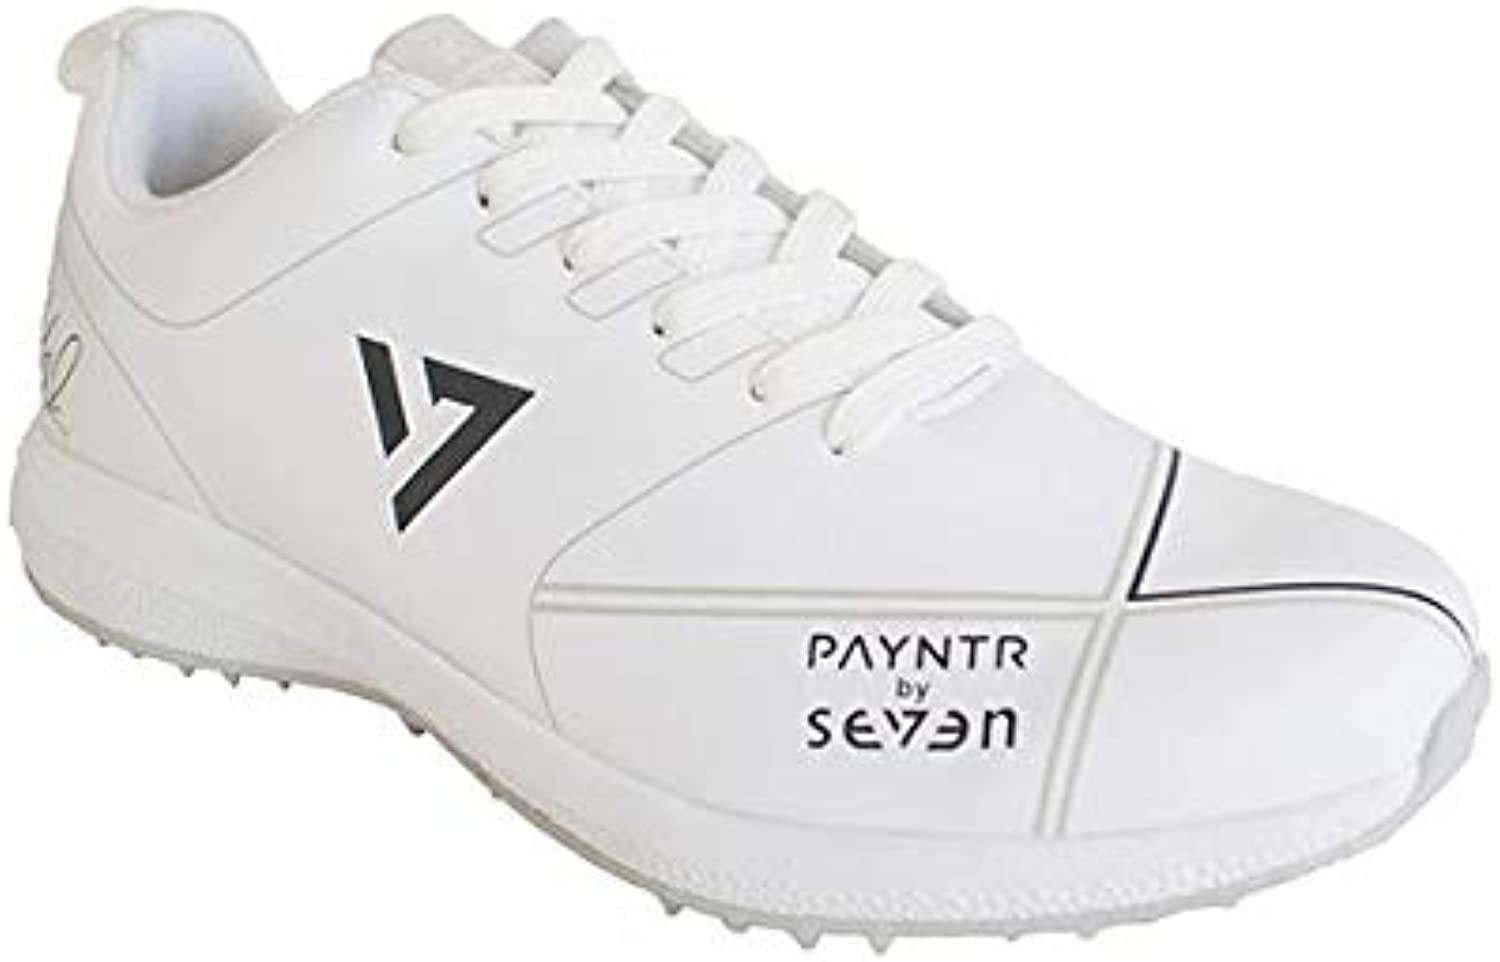 Payntr Rubber Cricket shoes by Seven White